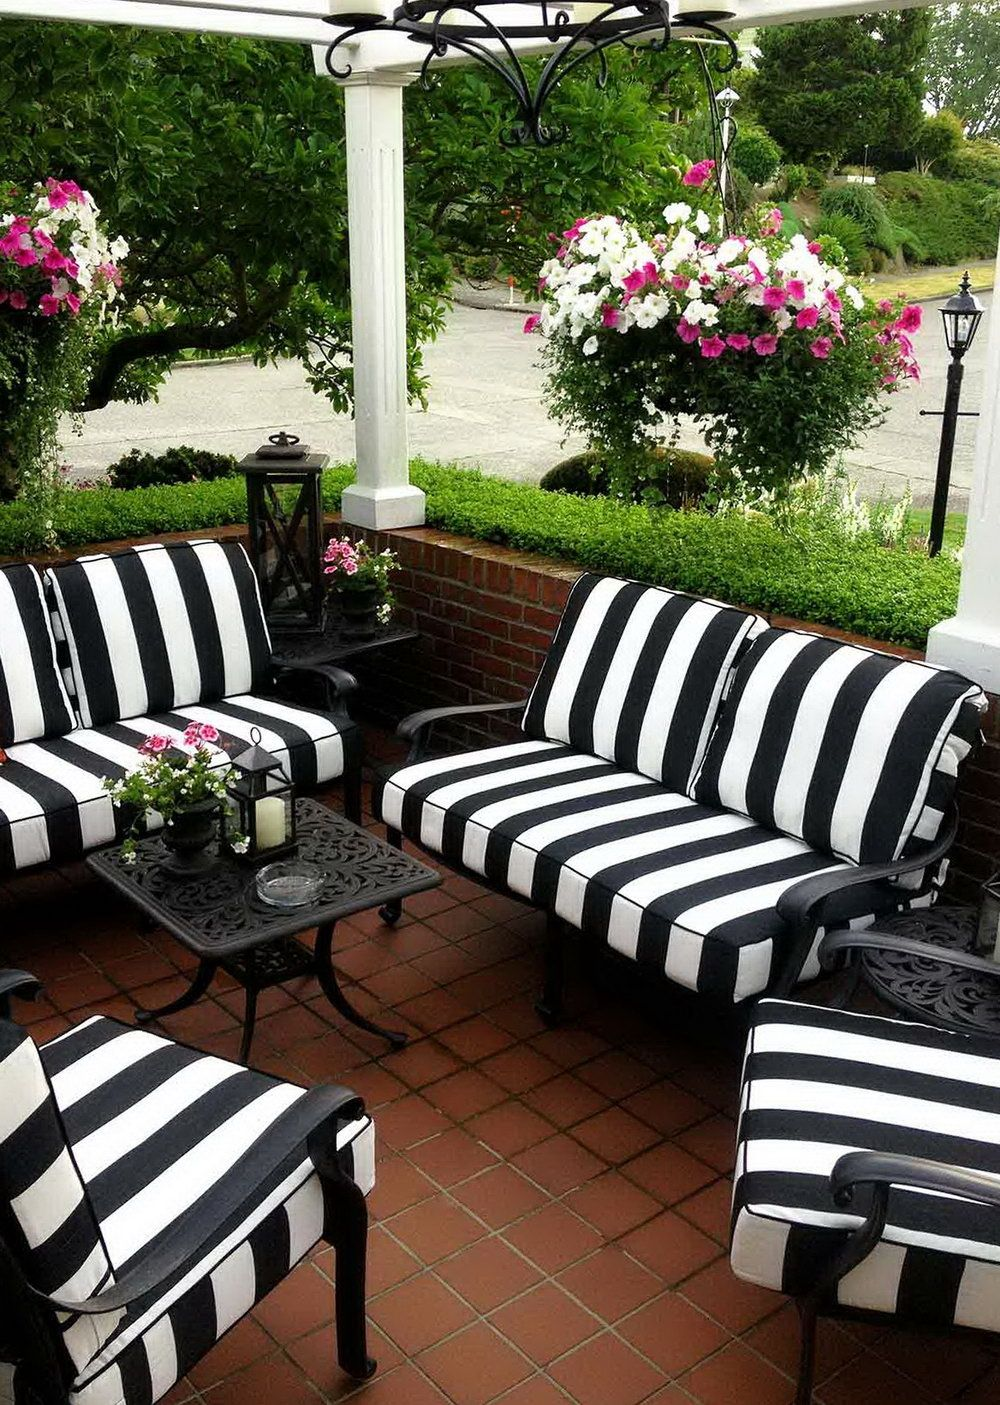 Delicieux Black And White Striped Patio Cushions